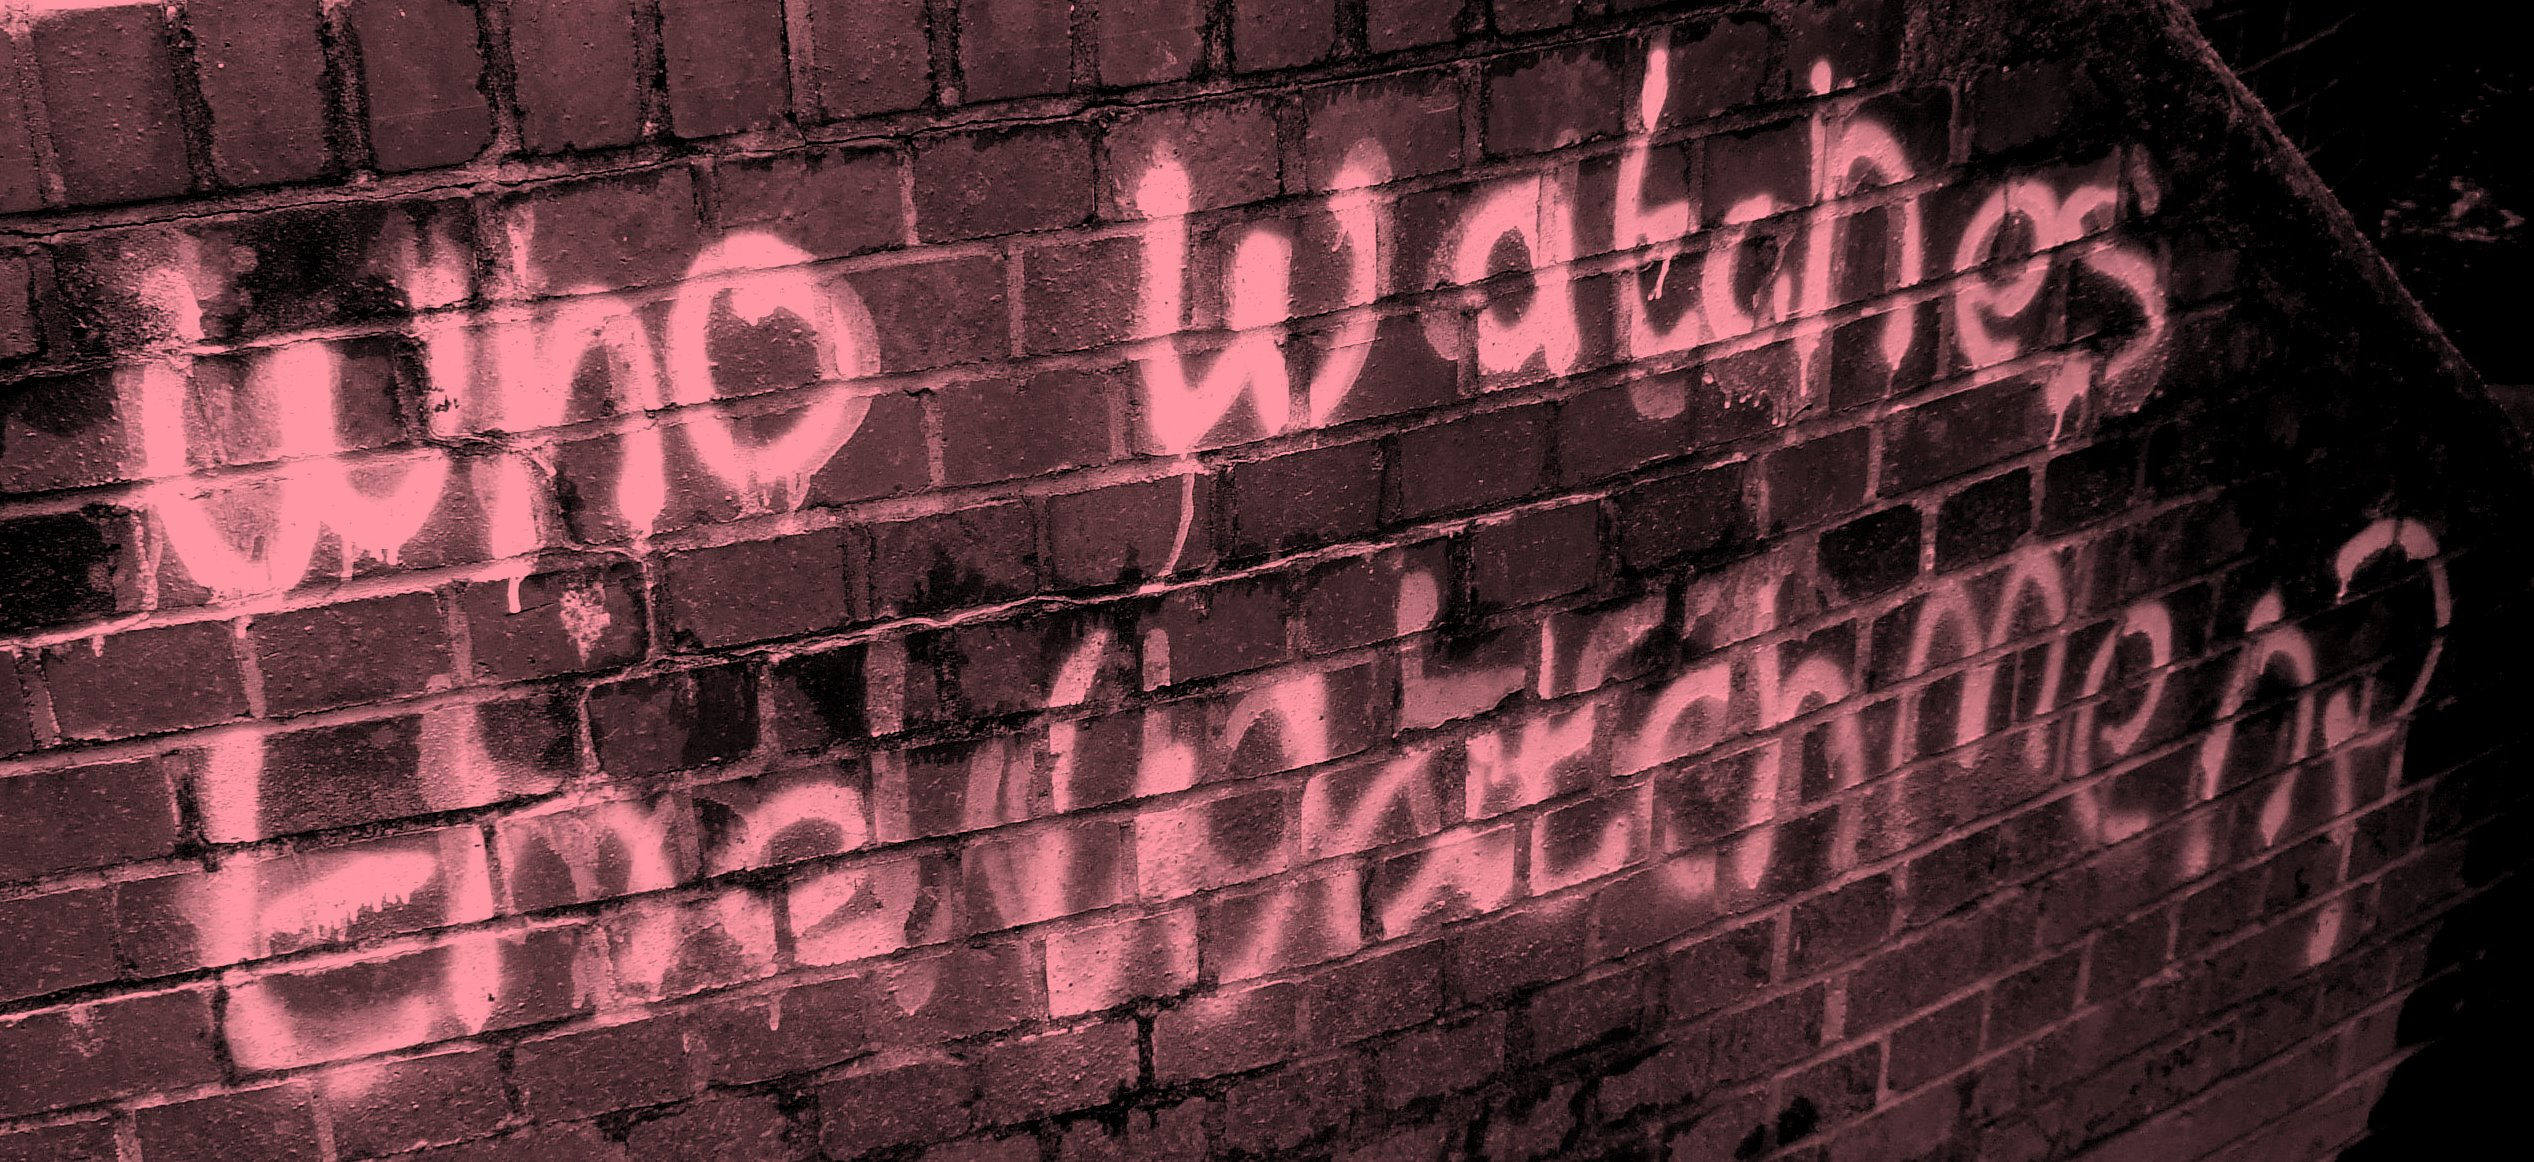 Who watches the watchmen graffiti